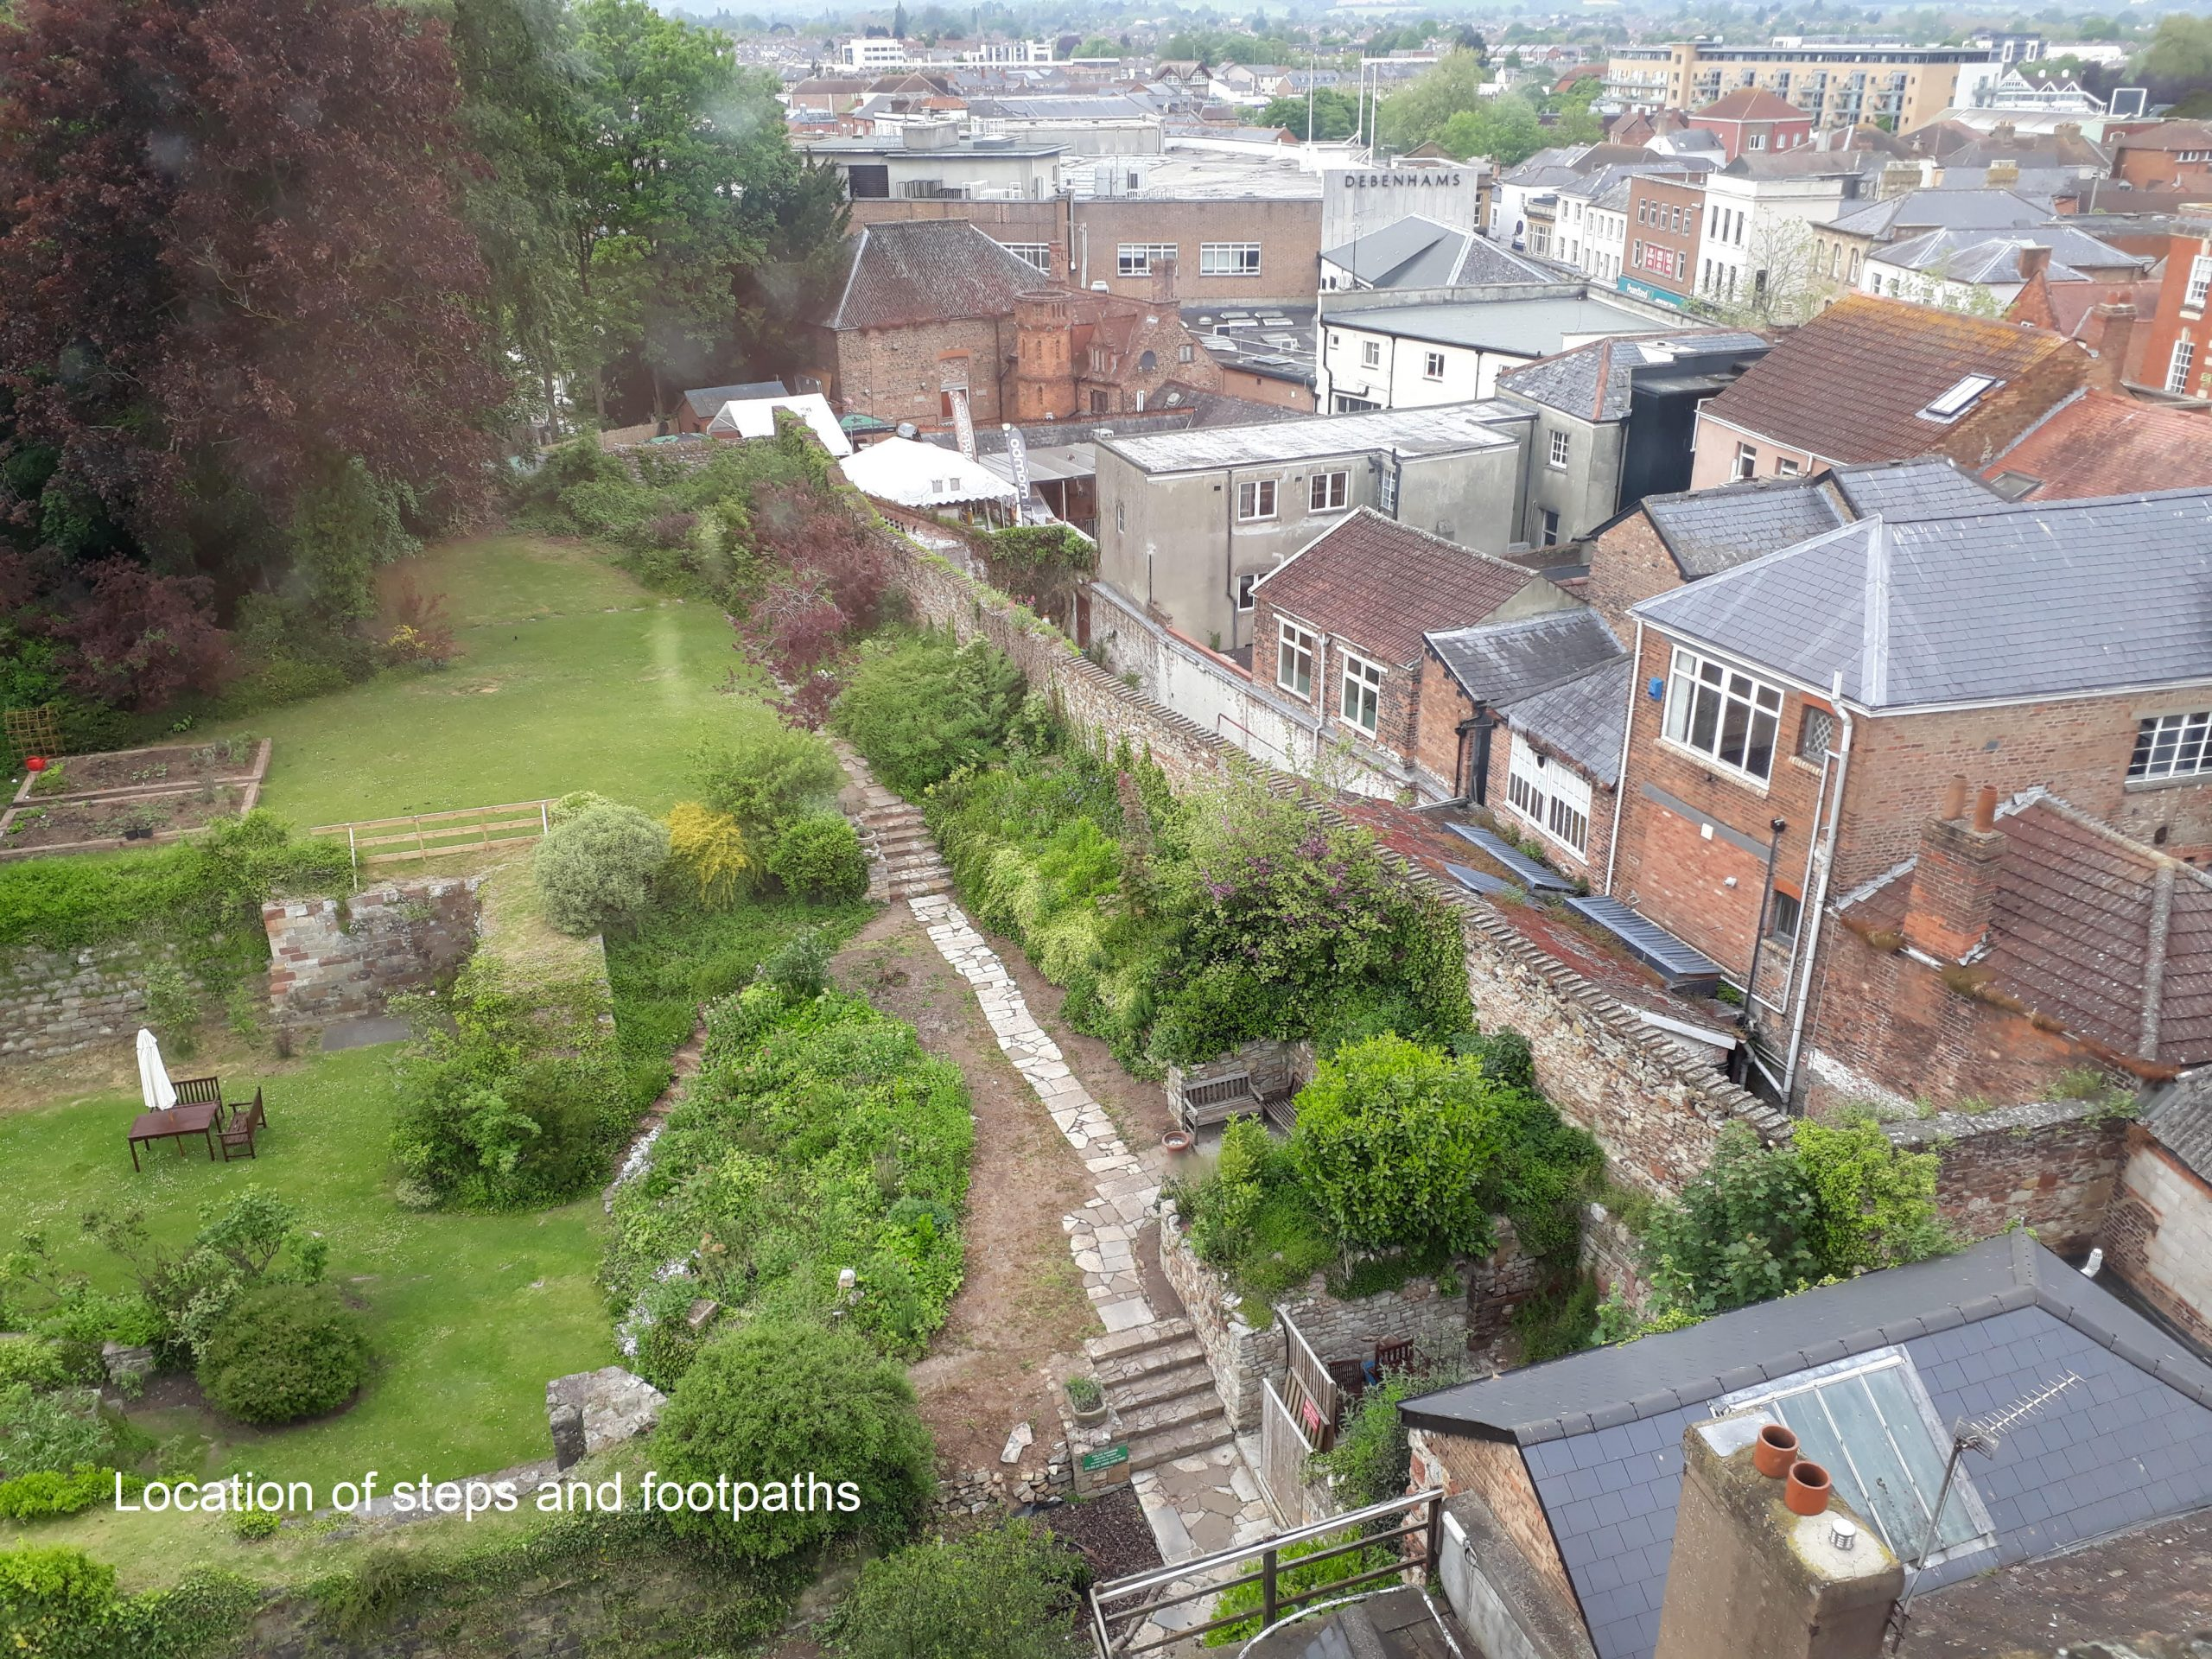 Aerial view of castle gardens Taunton